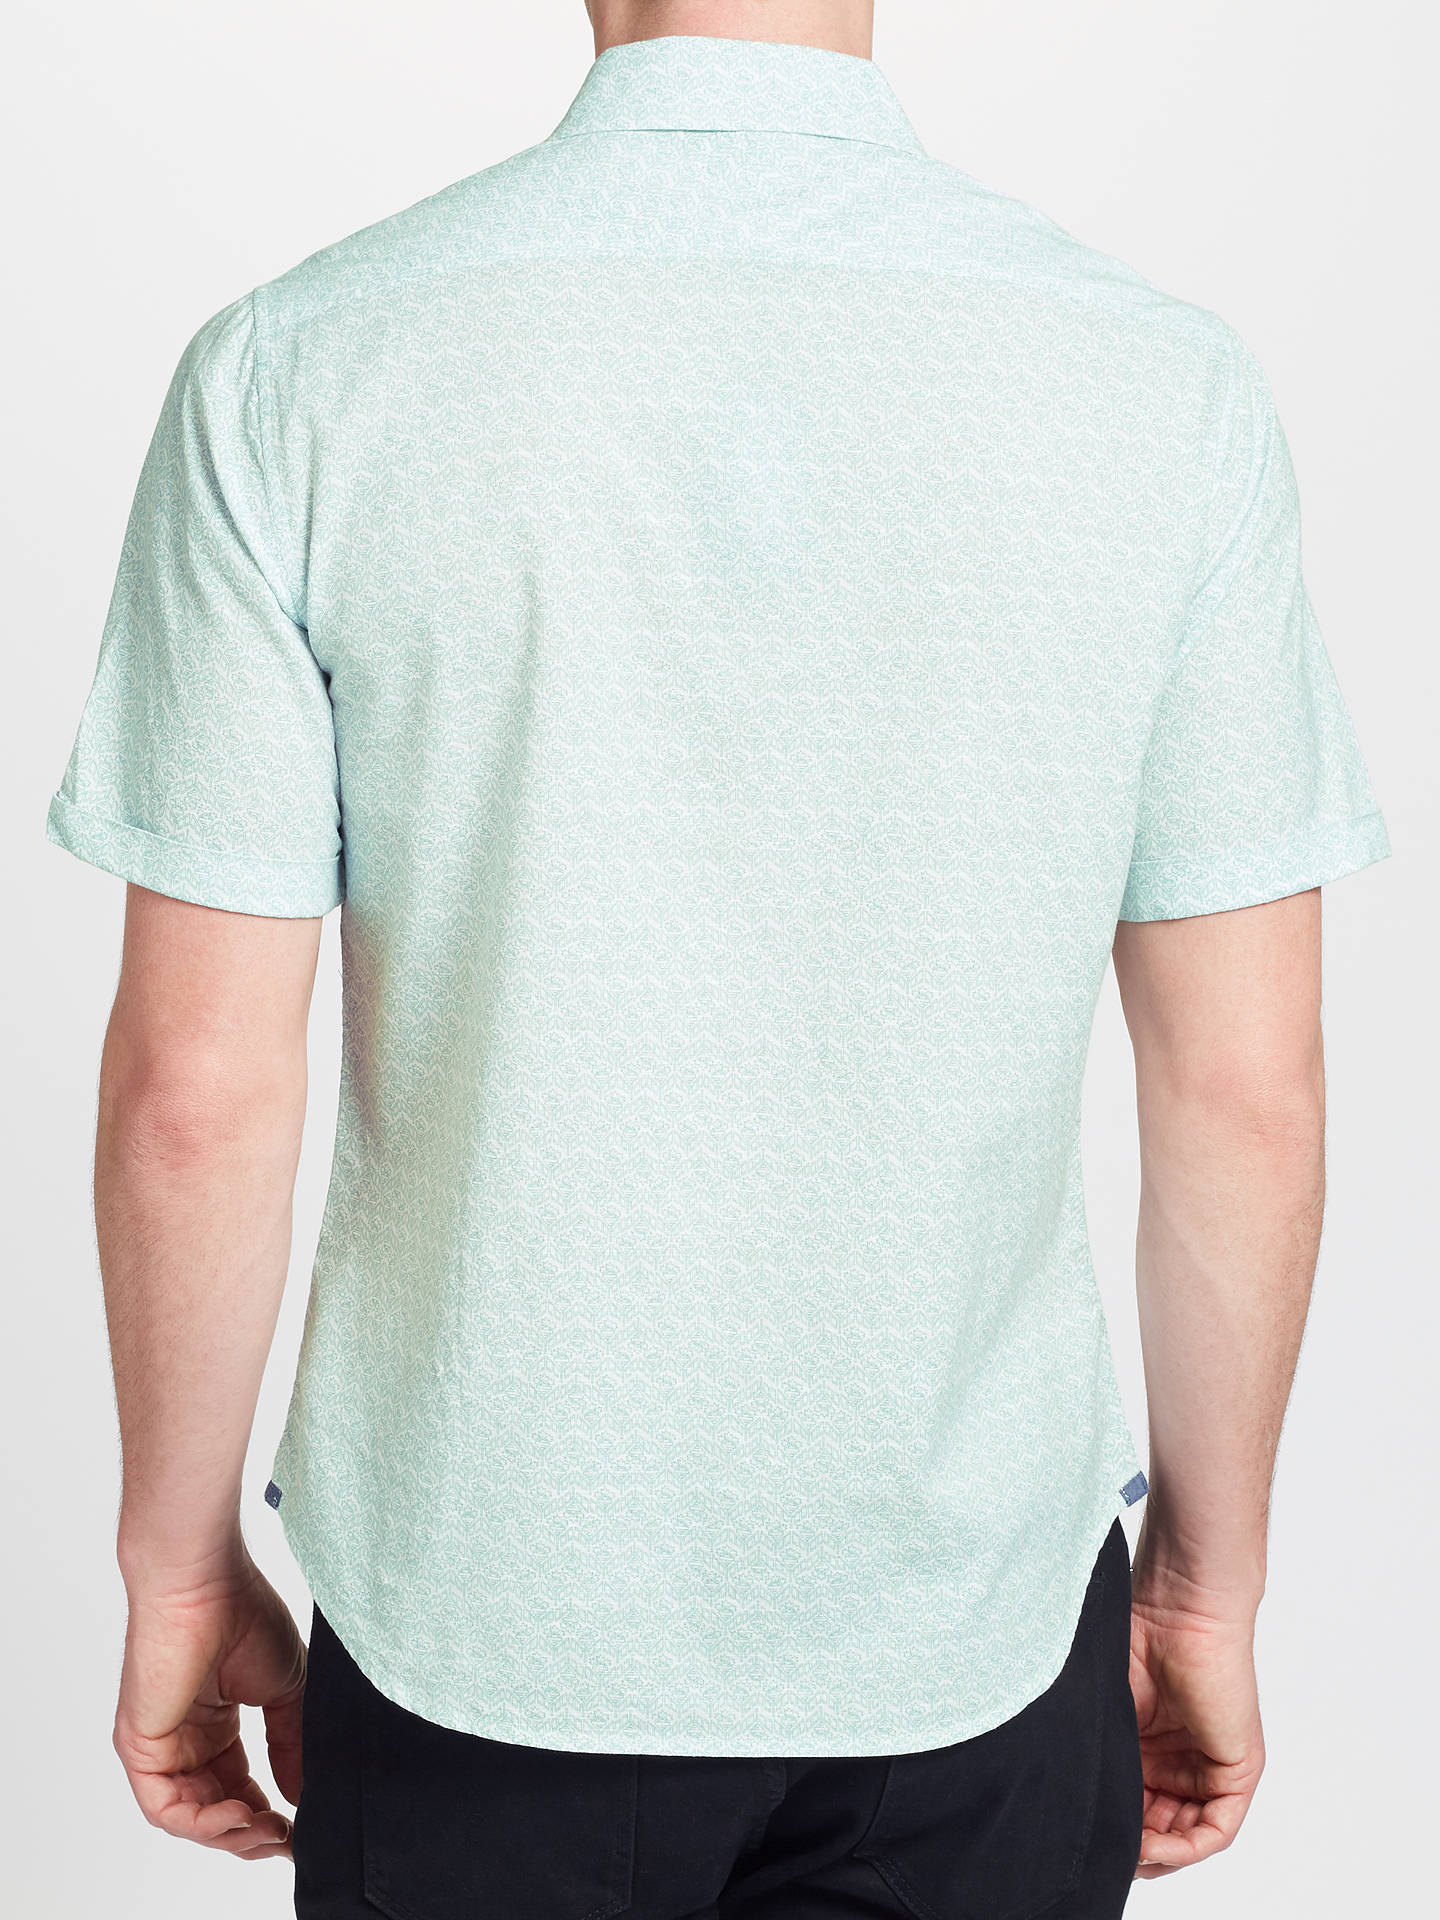 Buy John Lewis & Partners Dhalia Print Short Sleeve Shirt, Light Green, S Online at johnlewis.com